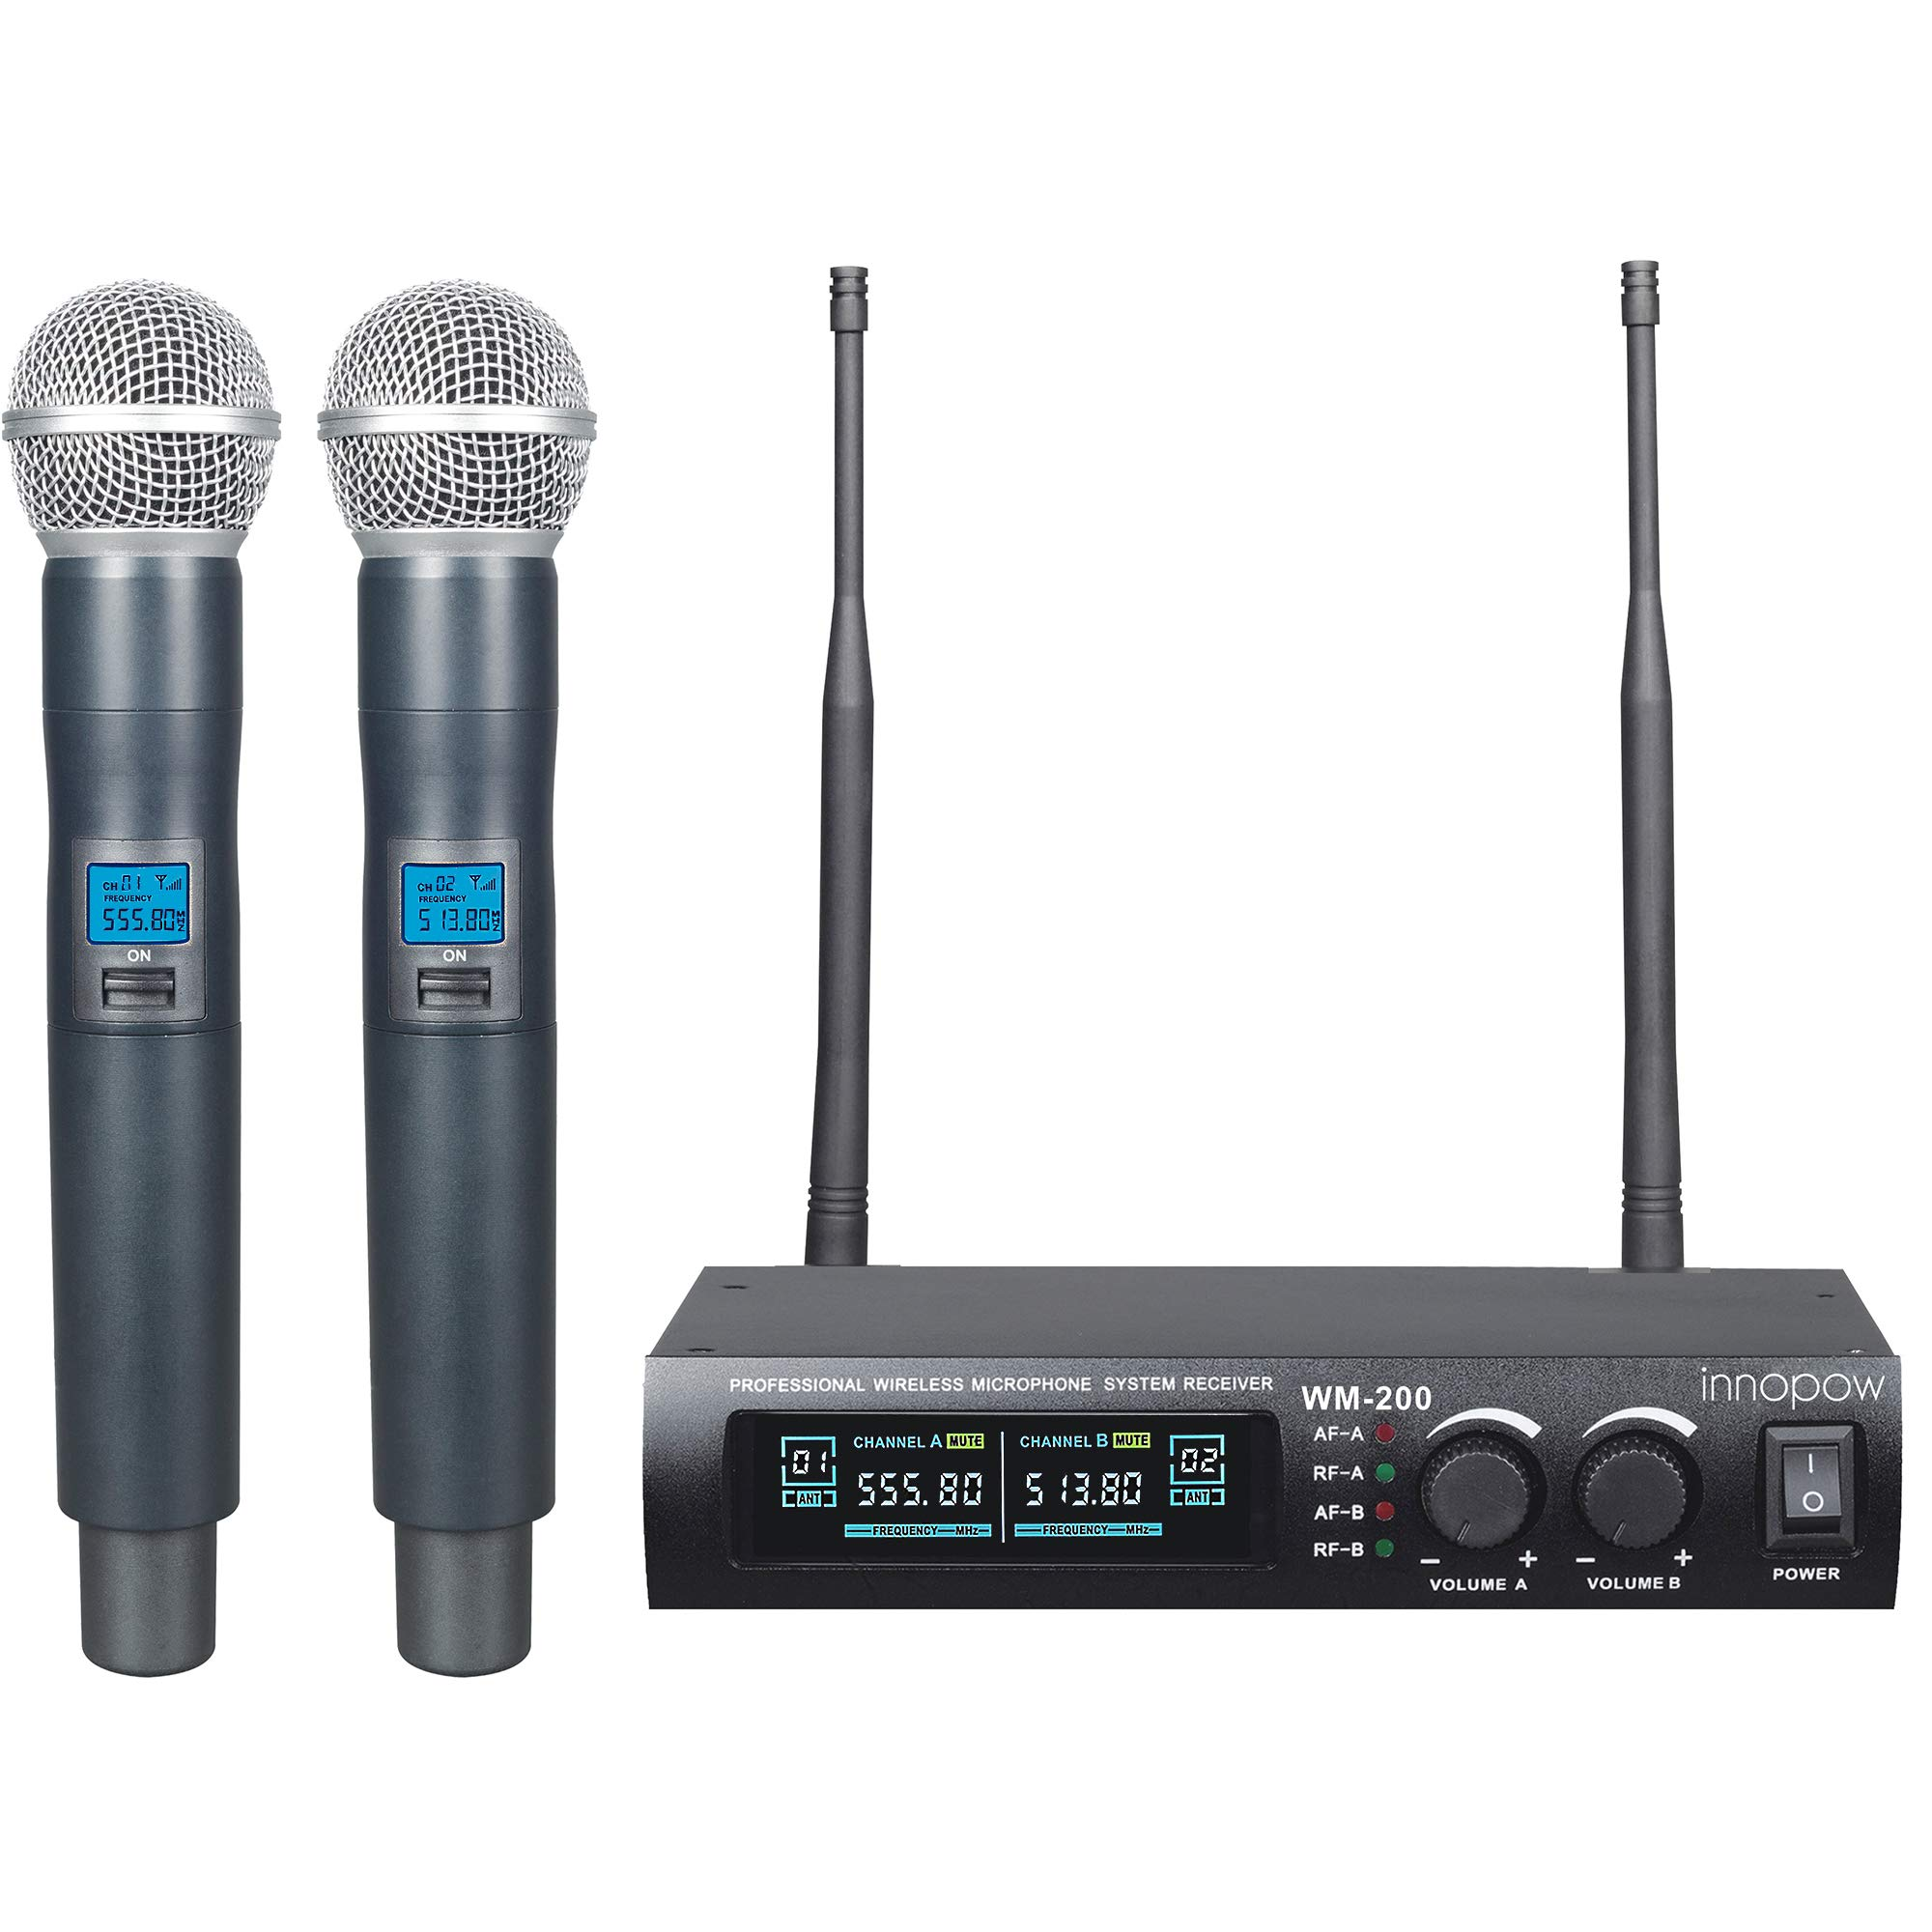 innopow Metal Dual UHF Wireless Microphone System,inp Metal Cordless Mic set, Long Distance 150-200Ft,16 Hours Continuous Use for Family Party,Church,Small karaoke Night (WM-200-New) by innopow